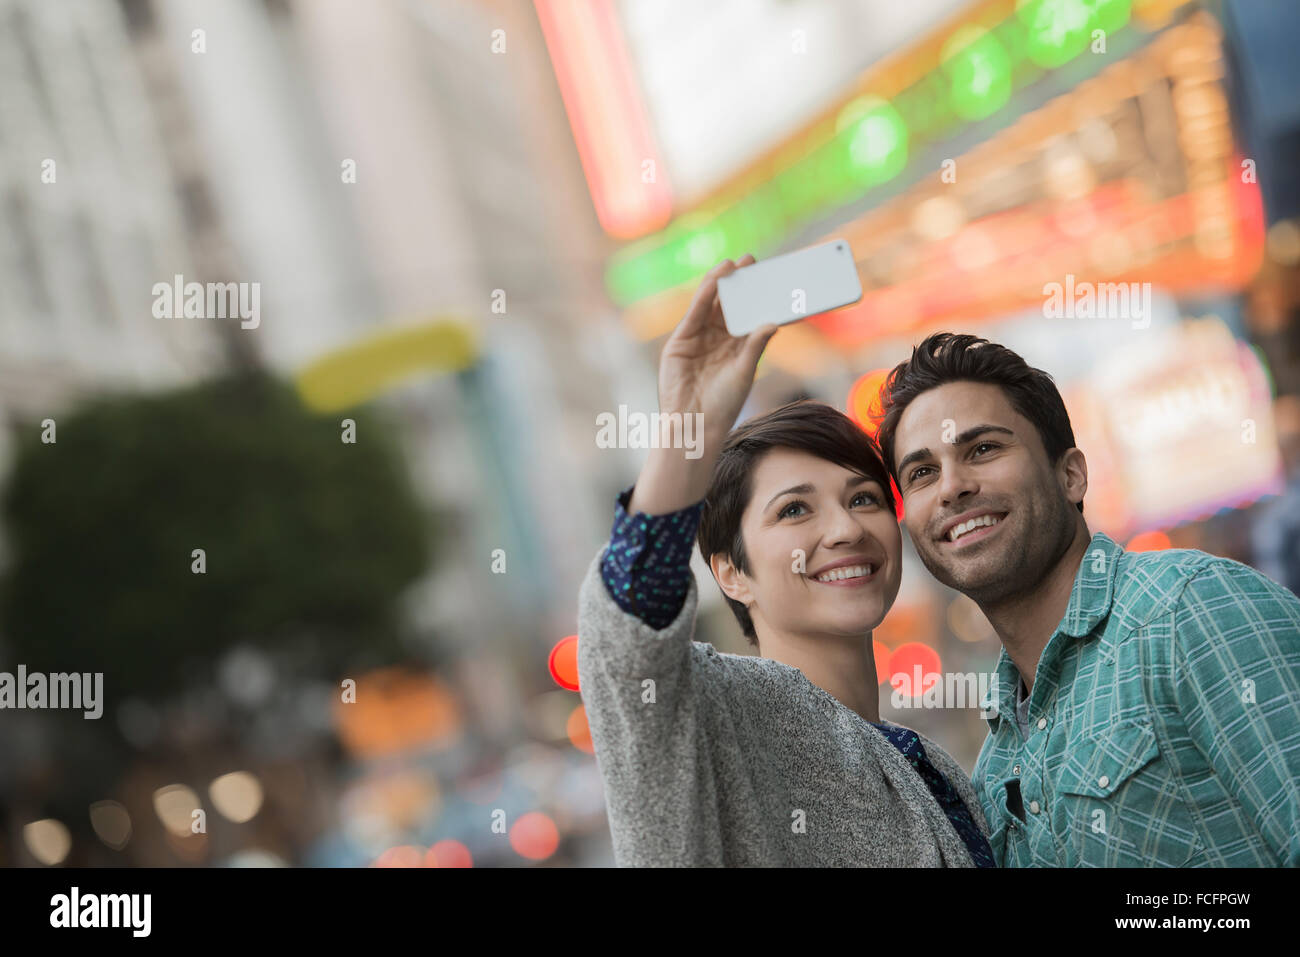 A couple, man and woman on a city street taking a selfy with a smart phone. - Stock Image